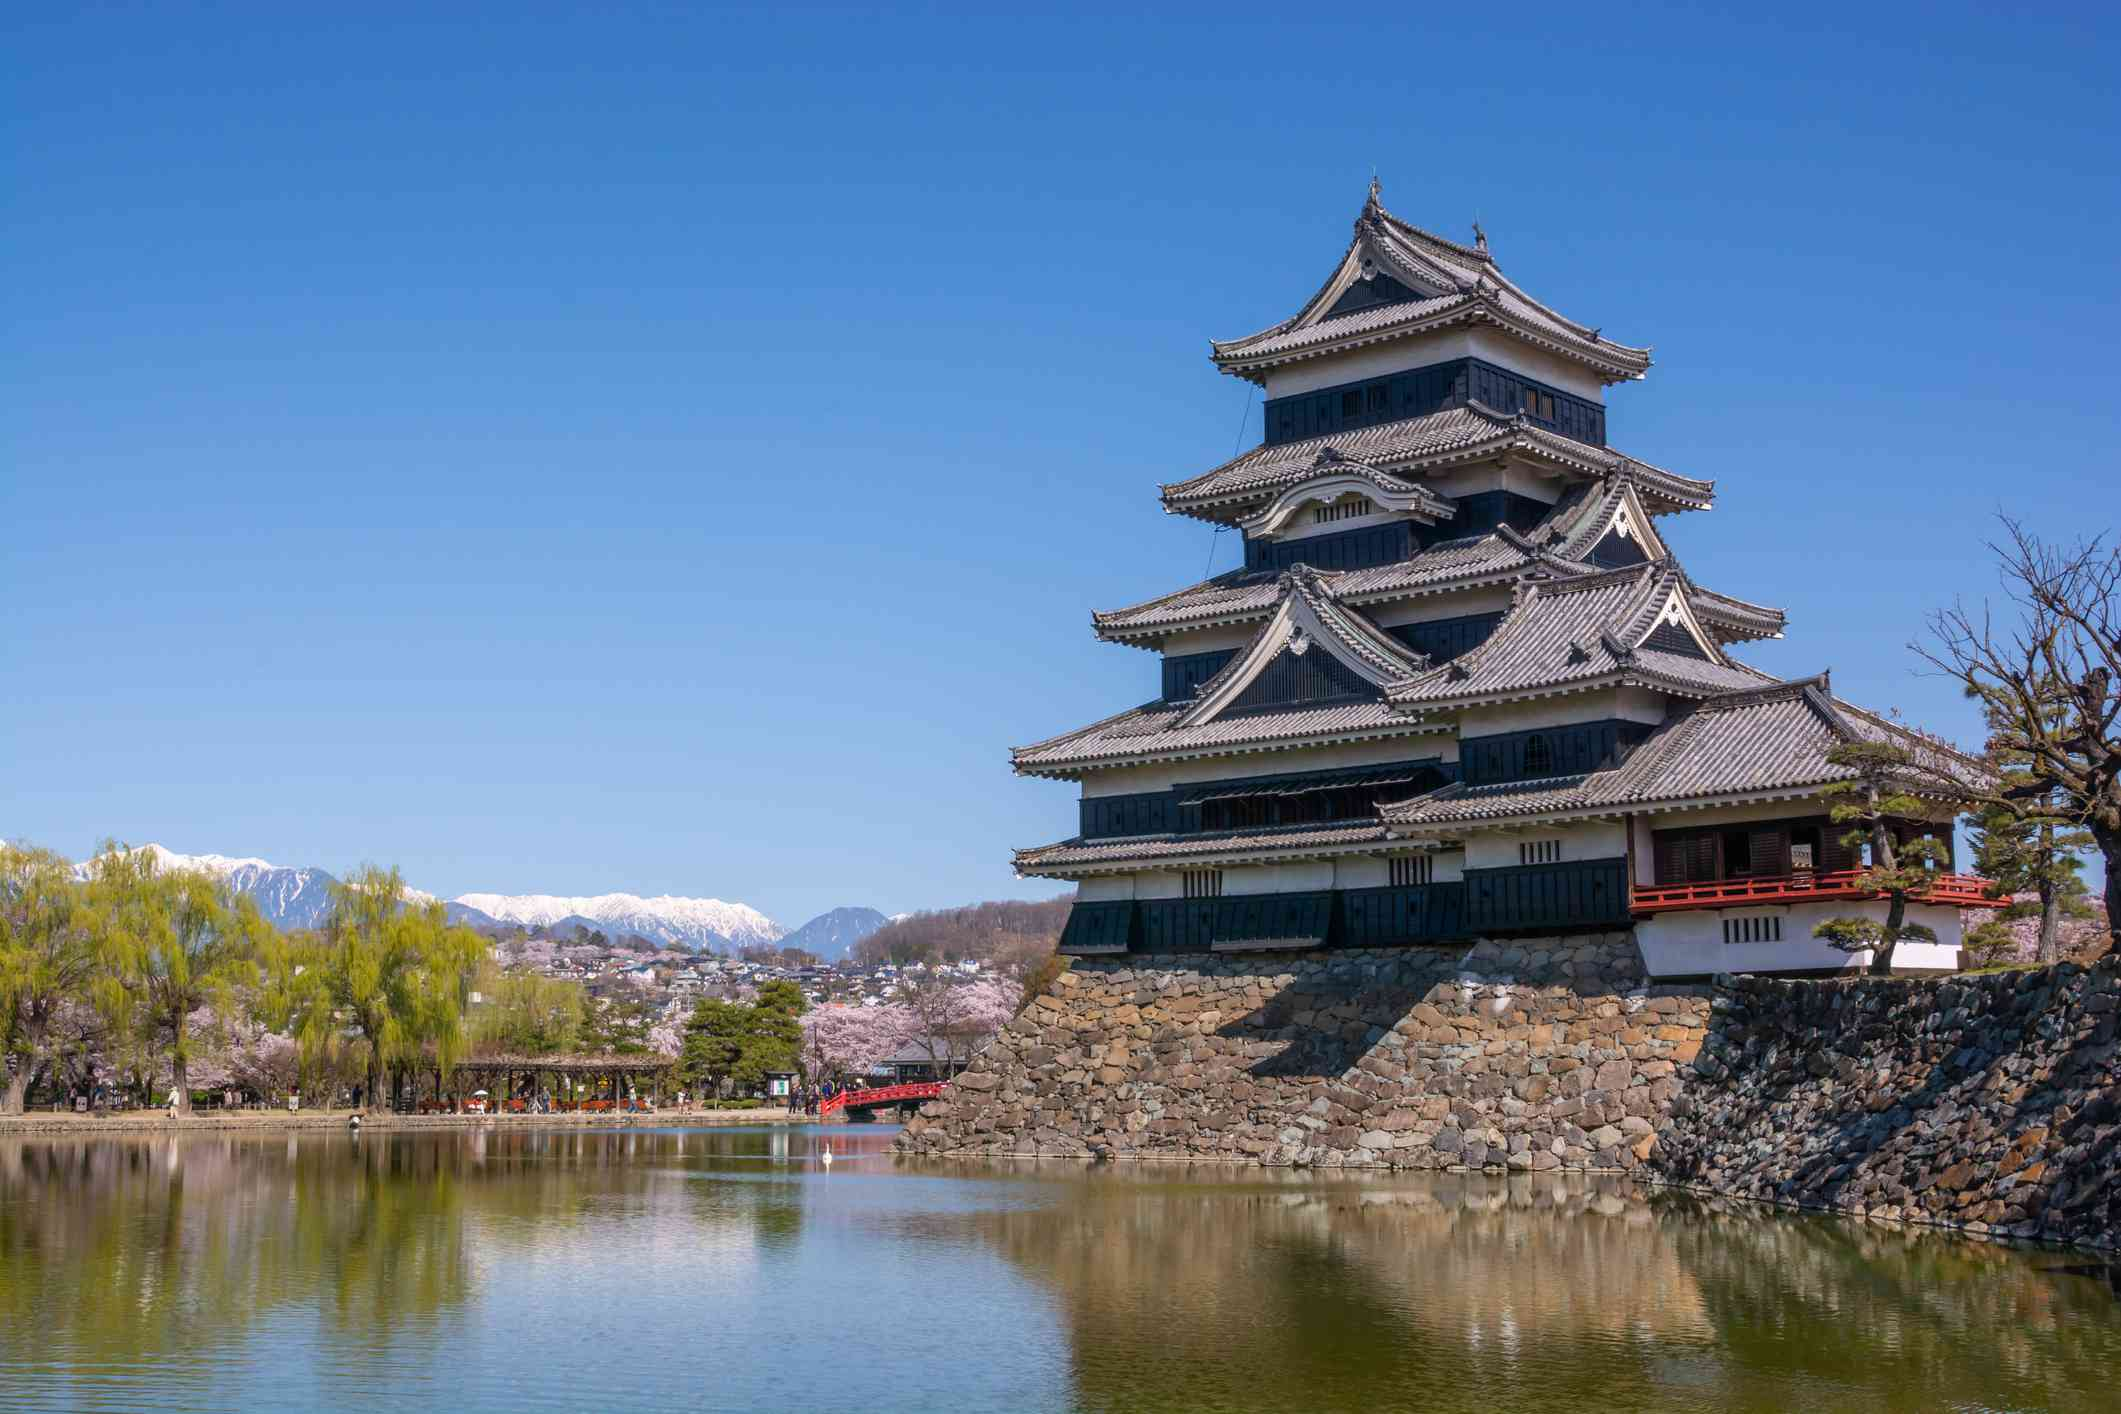 View of Matsumoto Castle from across a small waterway under a sunny, clear blue sky